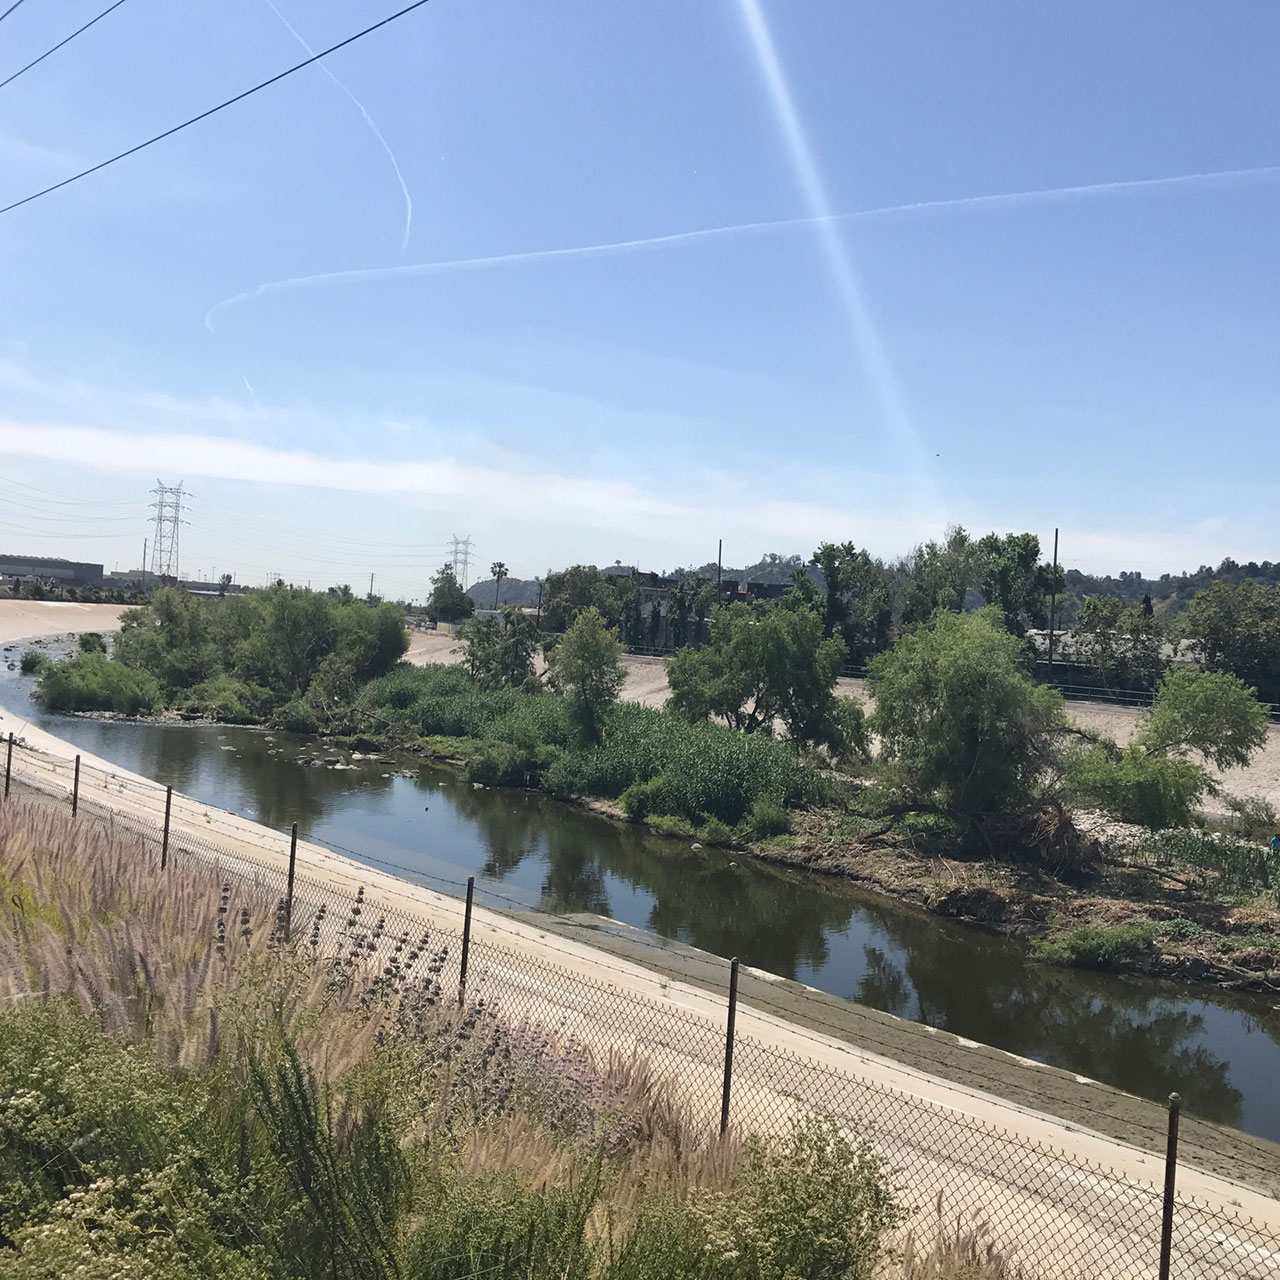 Los Angeles River by the Bowtie Parcel Park. Photo by Yassy Wilkins, USDA Forest Service - State & Private Forestry, Los Angeles Urban Center for Urban Natural Resources Sustainability